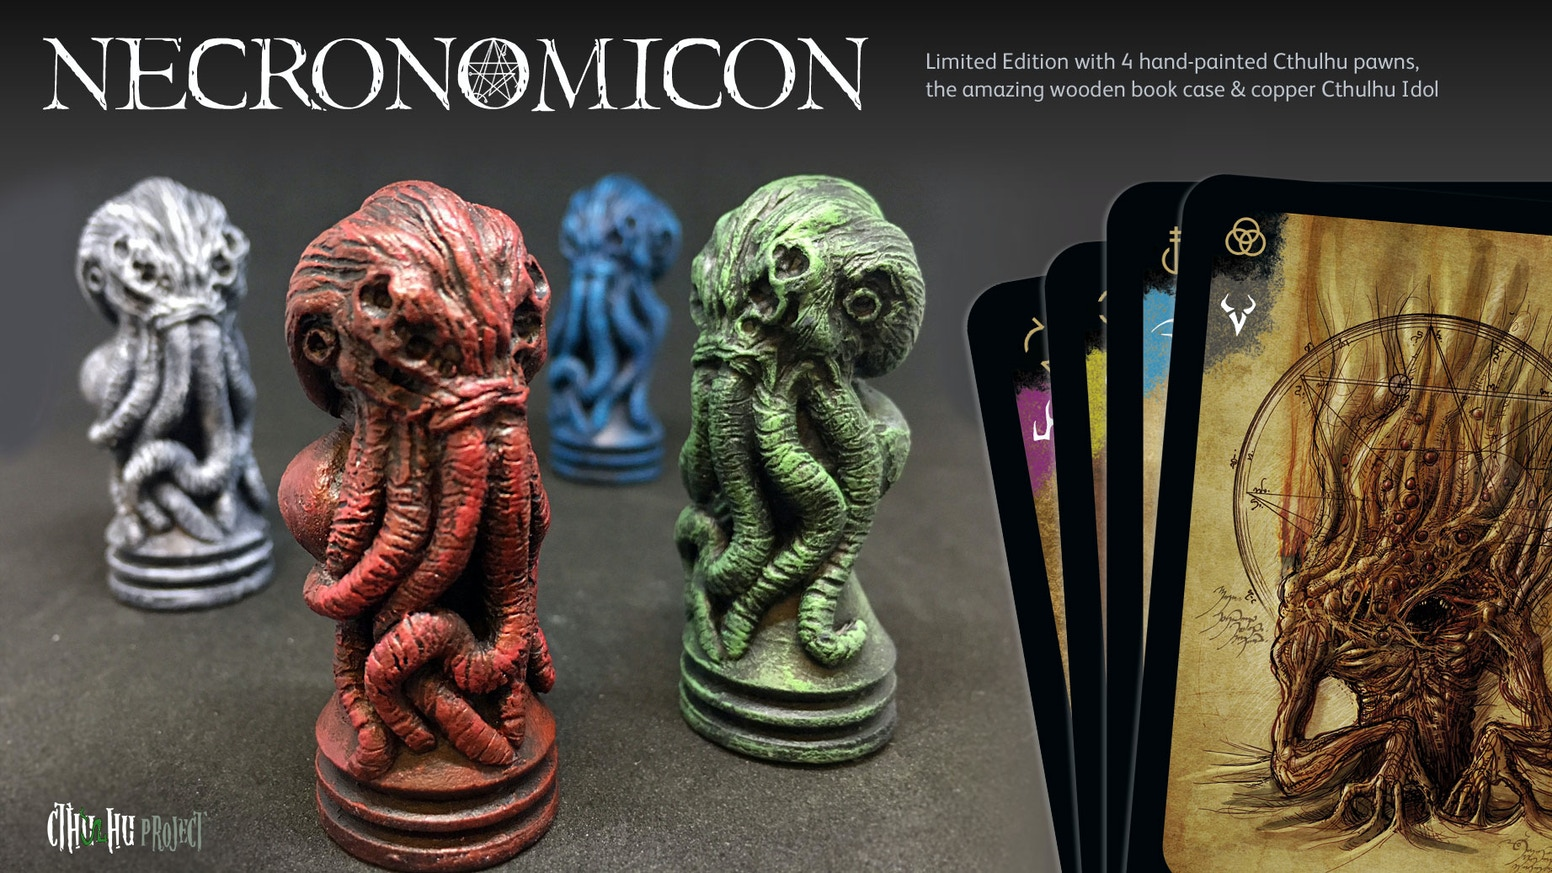 Can you complete the Necronomicon without losing all your sanity? A tribute to Lovecraft with Cthulhu pawns and Nec. wooden book-case.